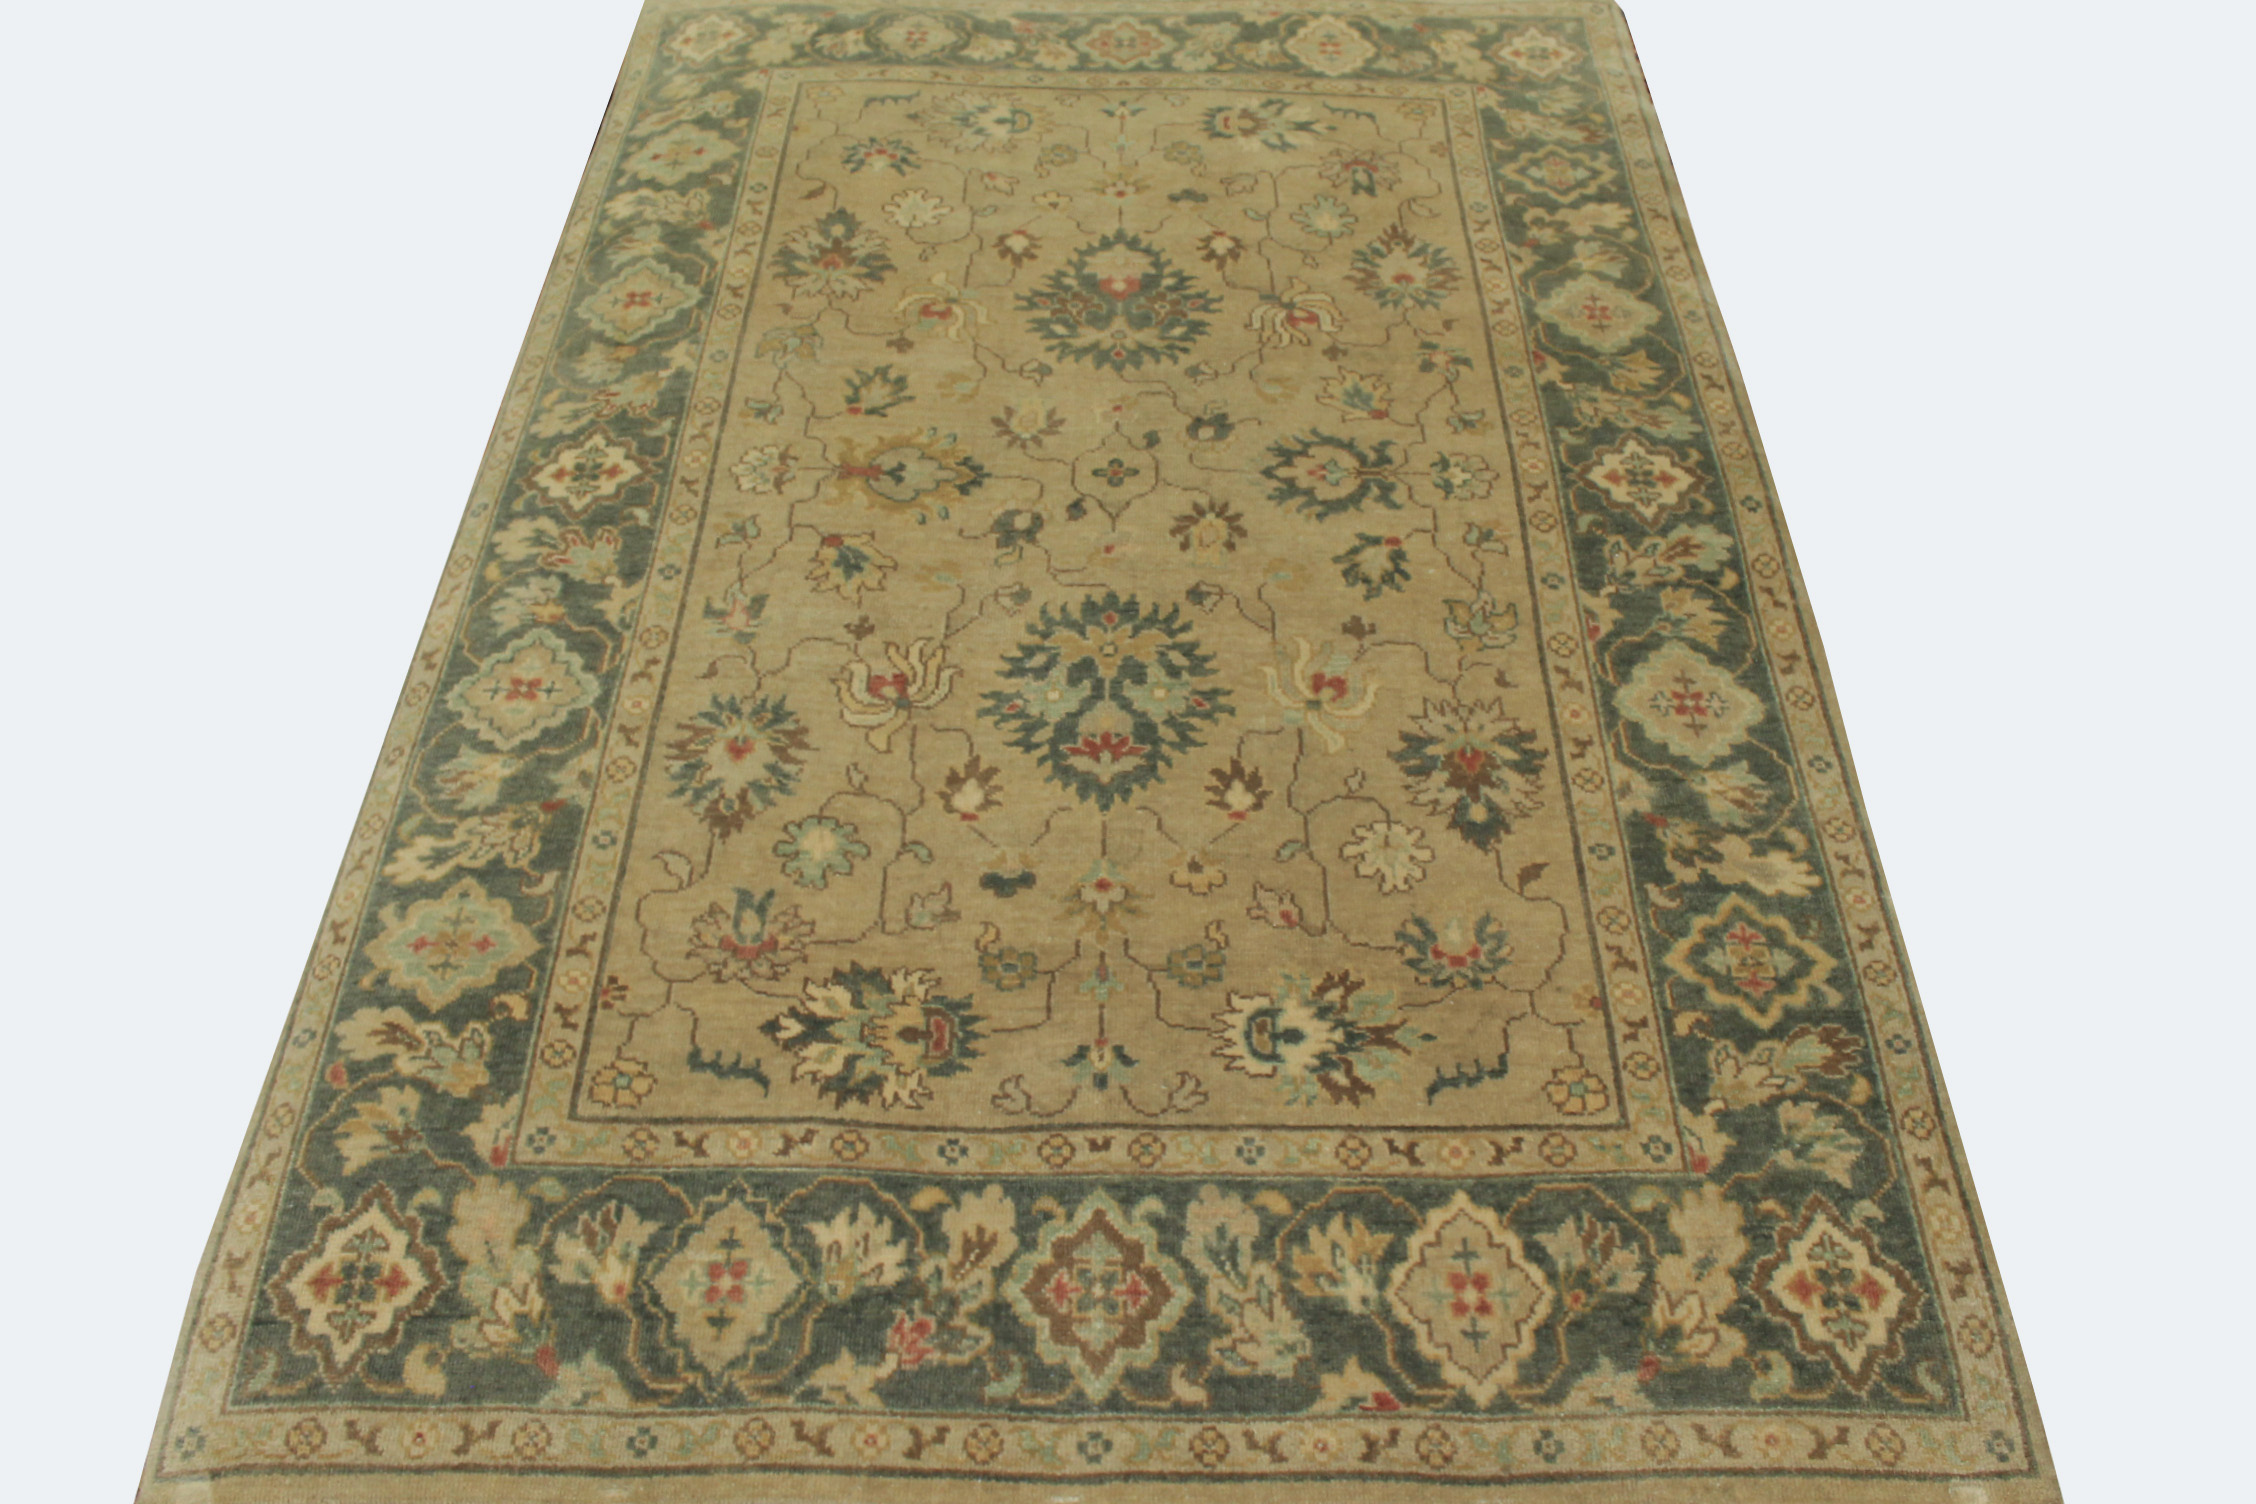 6x9 Traditional Hand Knotted Wool Area Rug - MR19915